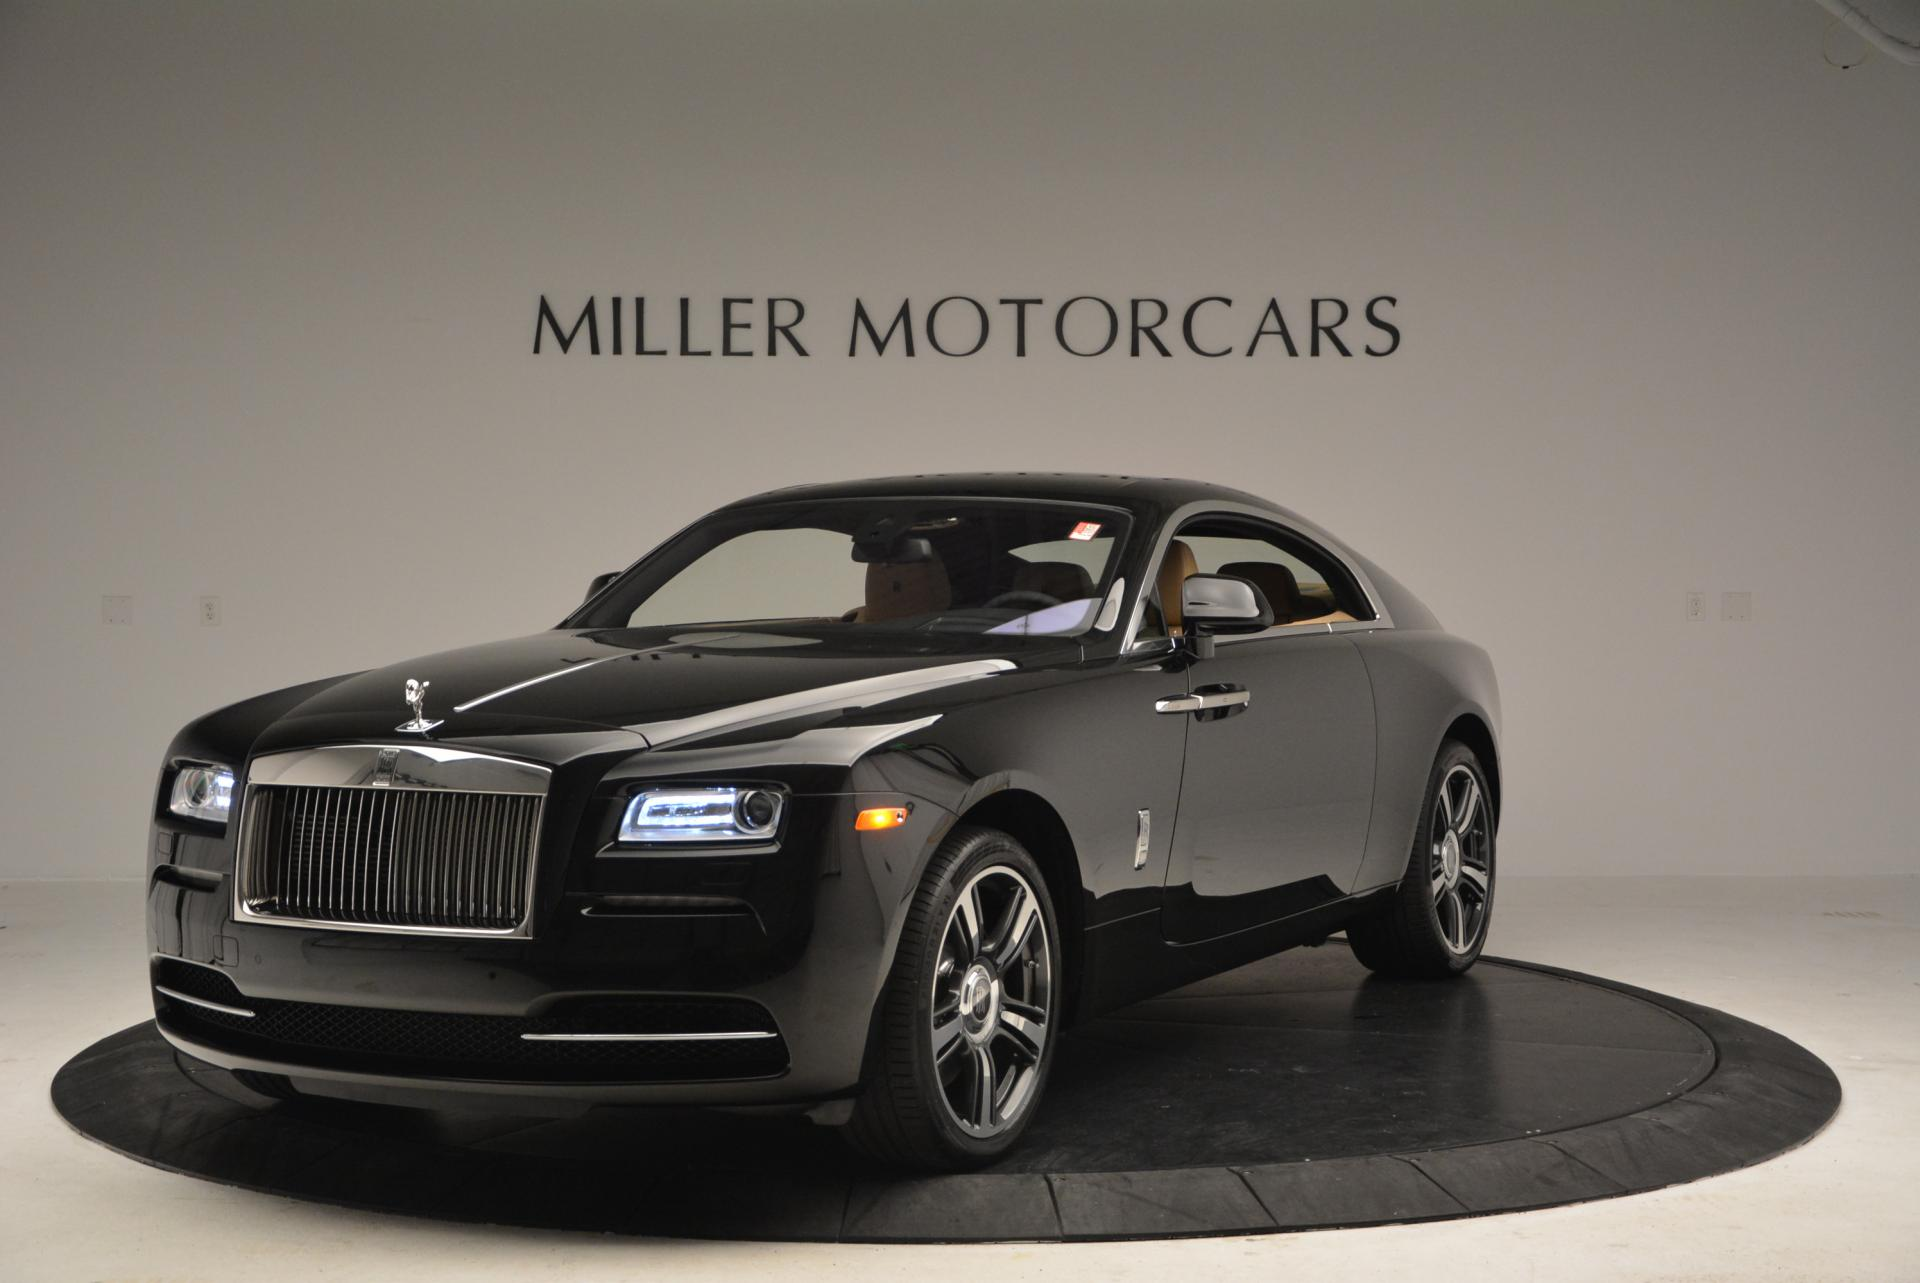 New 2016 Rolls-Royce Wraith for sale Sold at Bugatti of Greenwich in Greenwich CT 06830 1